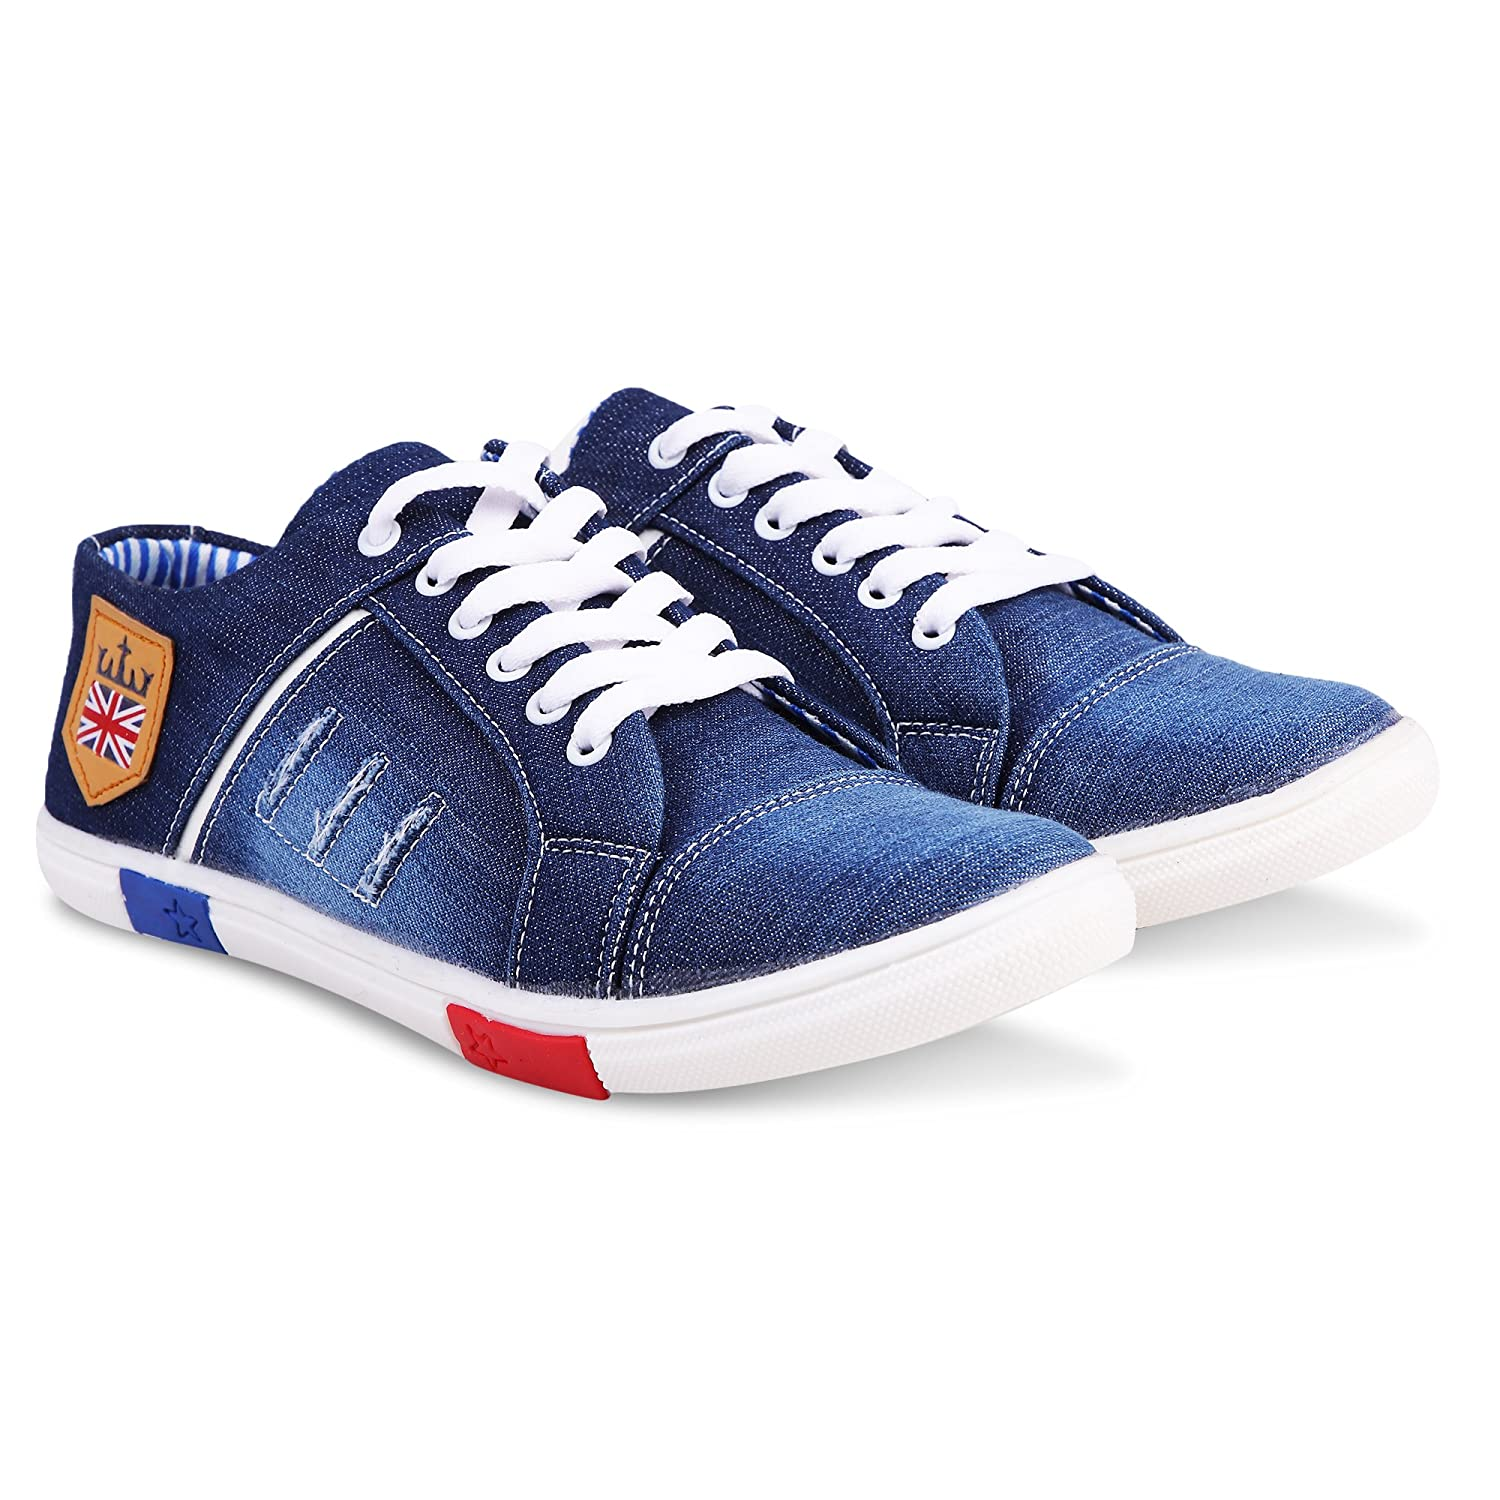 Men's Denim Jeans Sneakers Casual Shoes